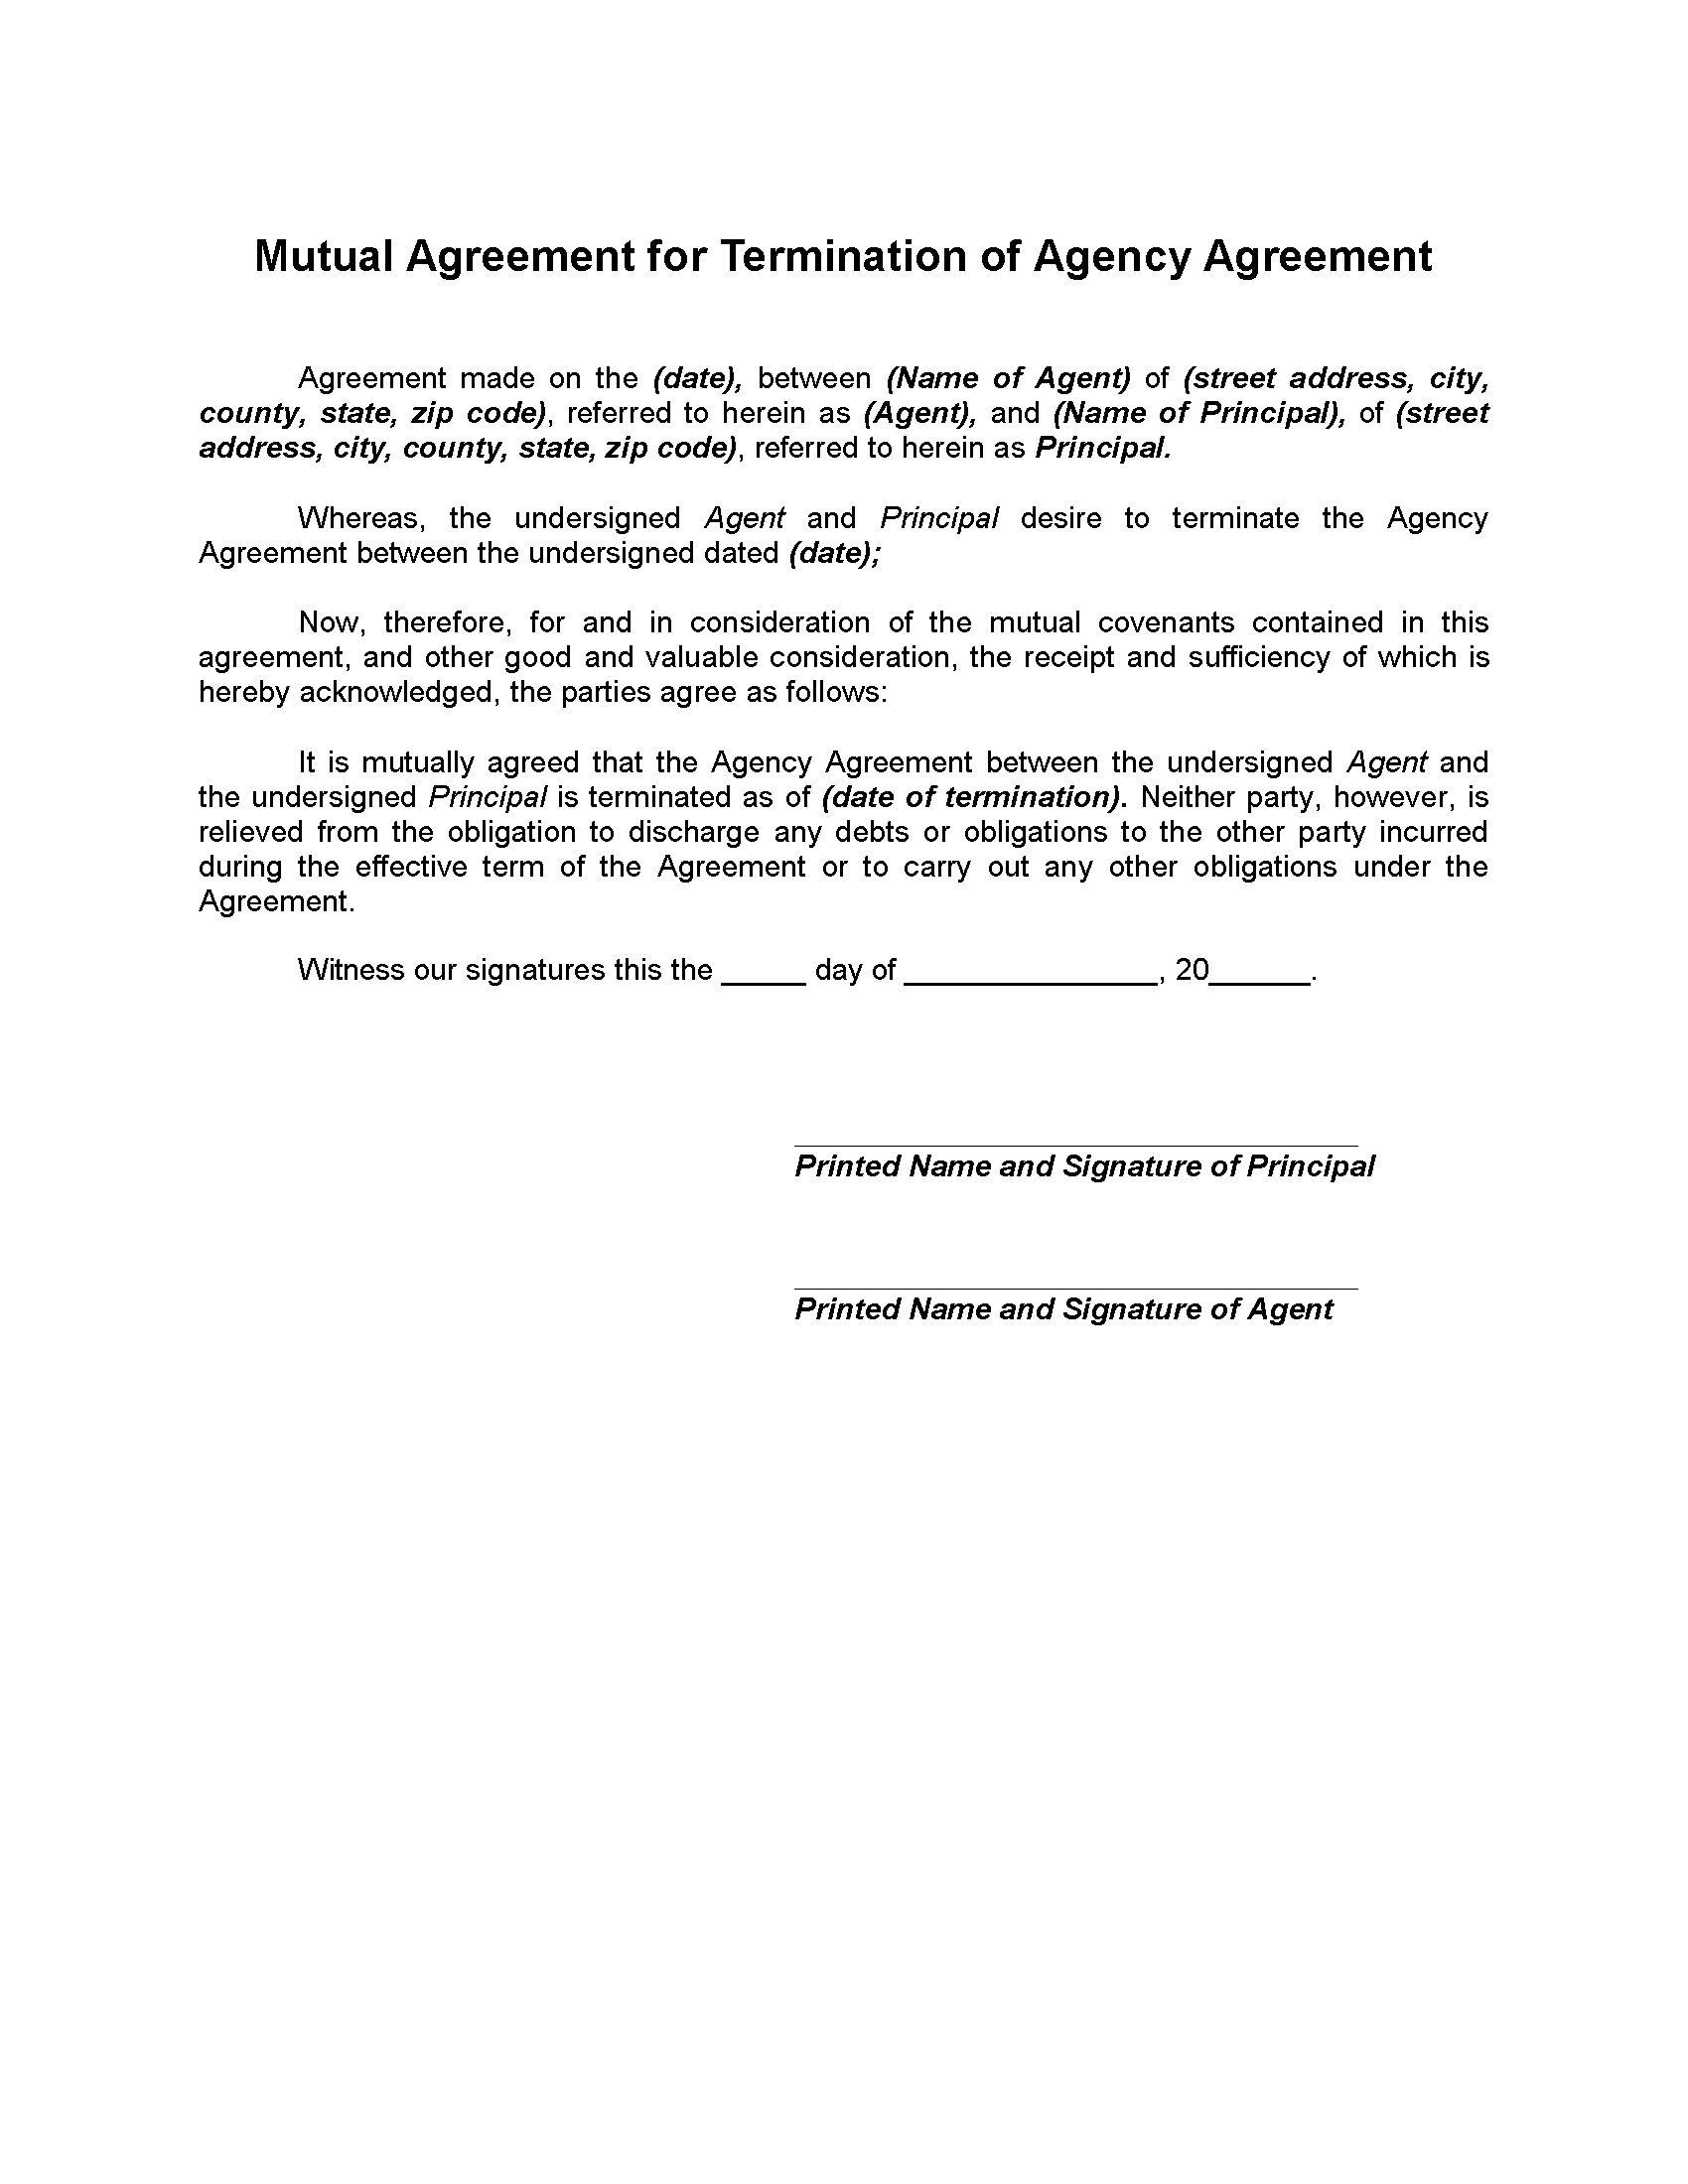 Mutual Termination Of Agency Agreement Legal Forms And Business